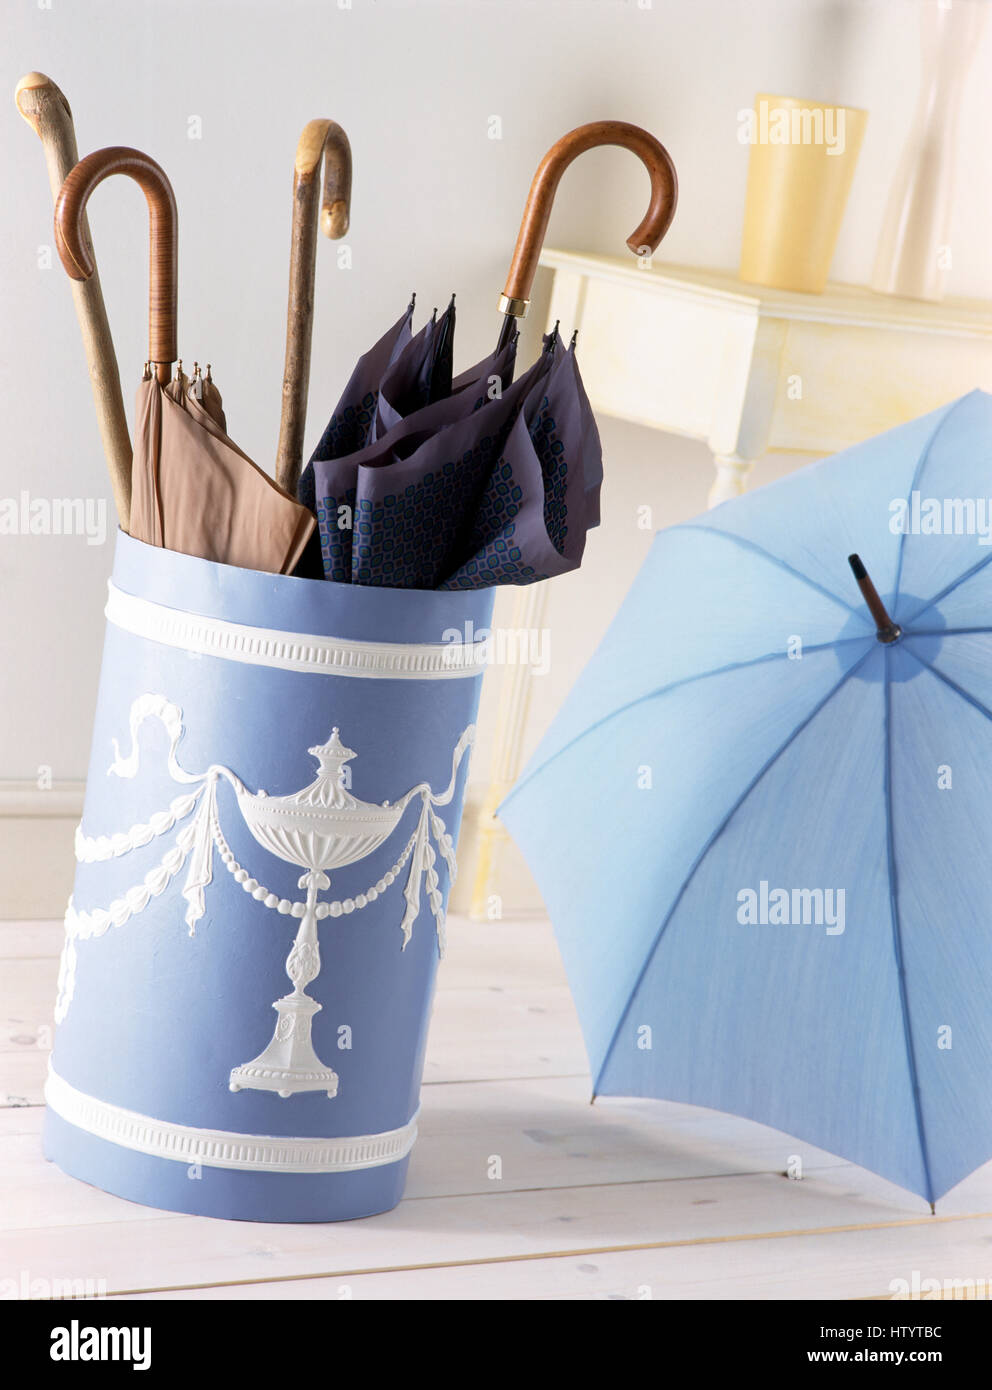 Close Up Of Umbrellas In An Umbrella Stand Painted In Blue And White  Wedgewood Style